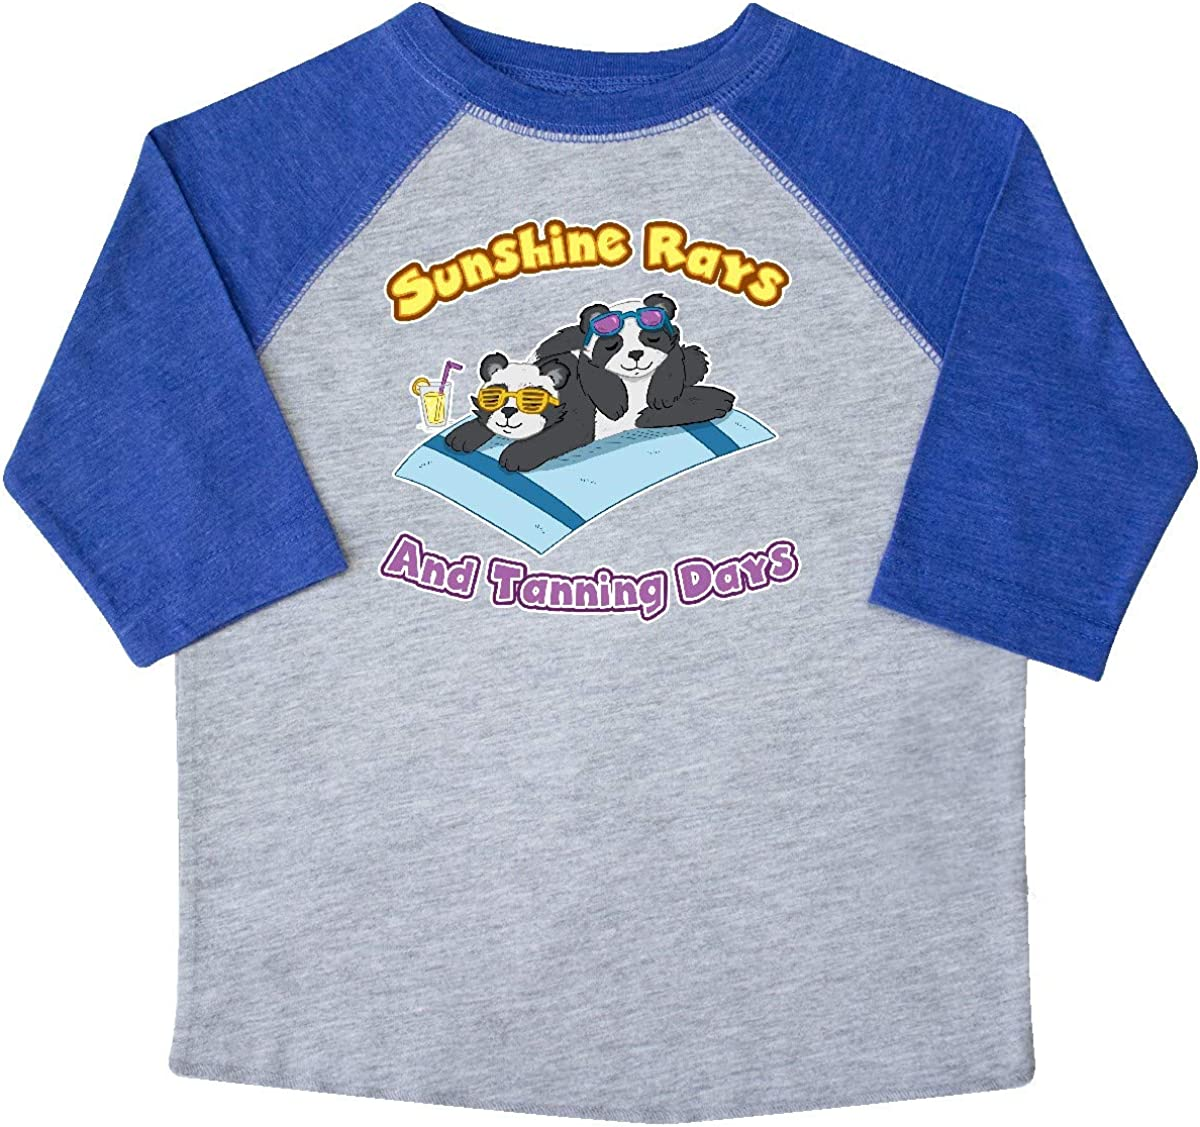 inktastic Cute Baby Pandas Sunshine Rays and Tanning Days Toddler T-Shirt